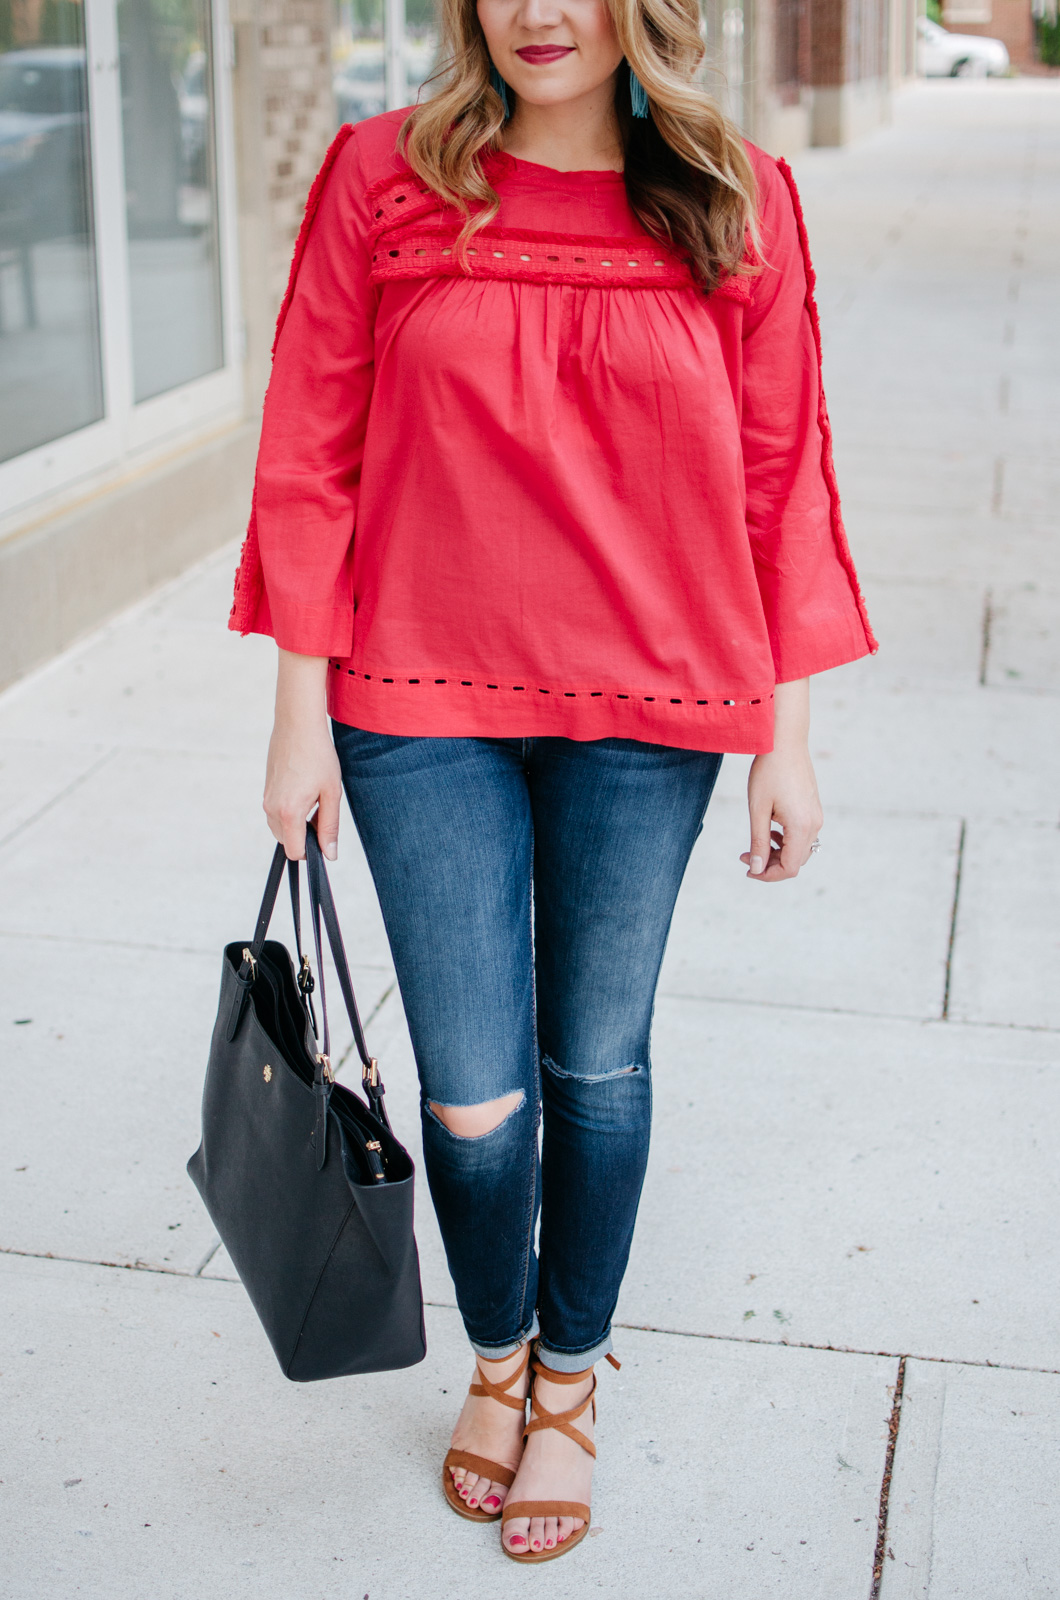 spring outfit ideas for moms - fringe embellished top | Get more cute spring weekend outfit ideas at bylaurenm.com!